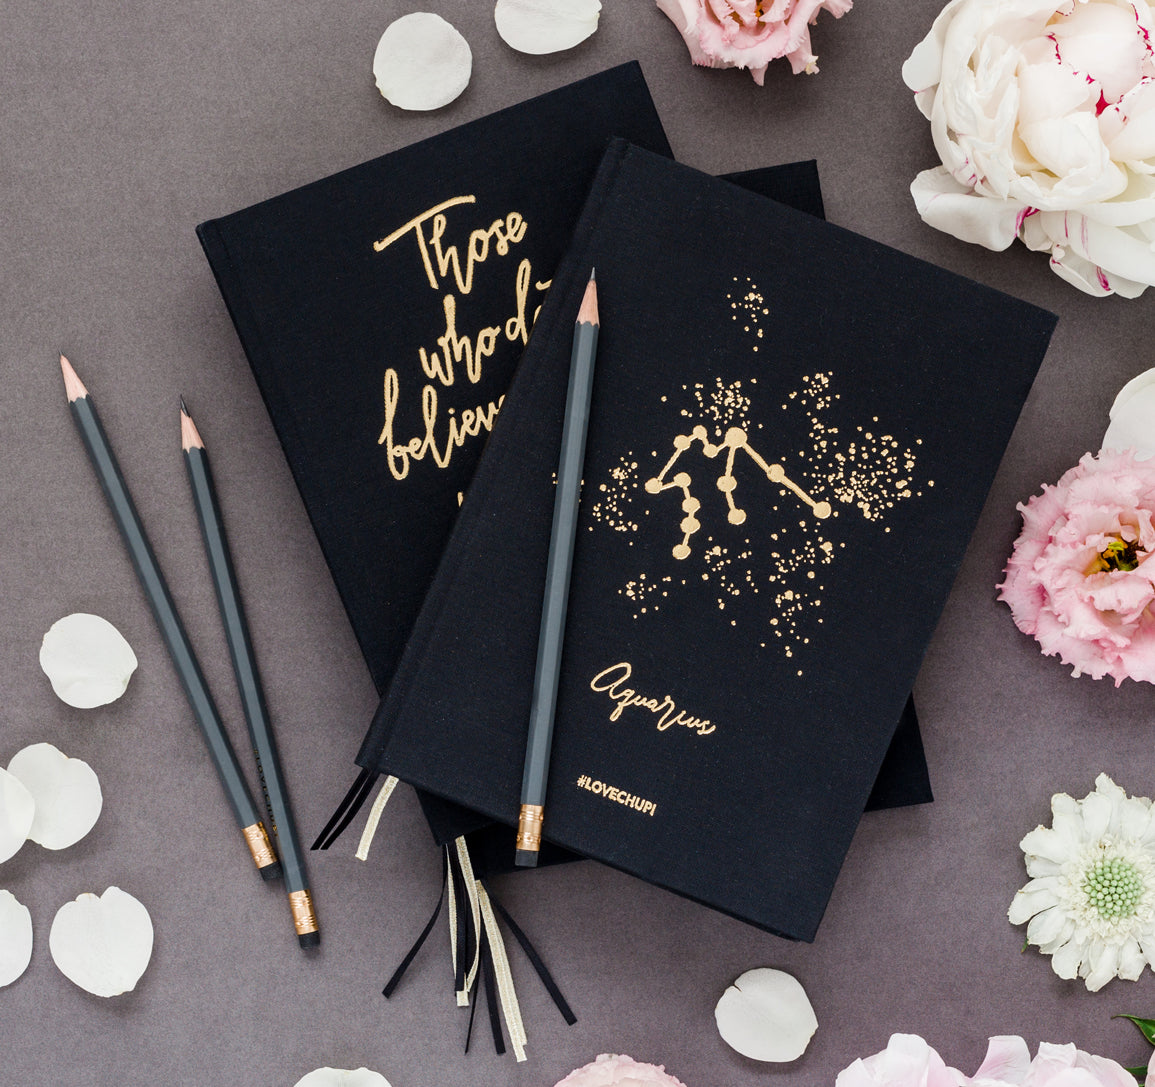 Our starsign gold-foil notebook and stationary.